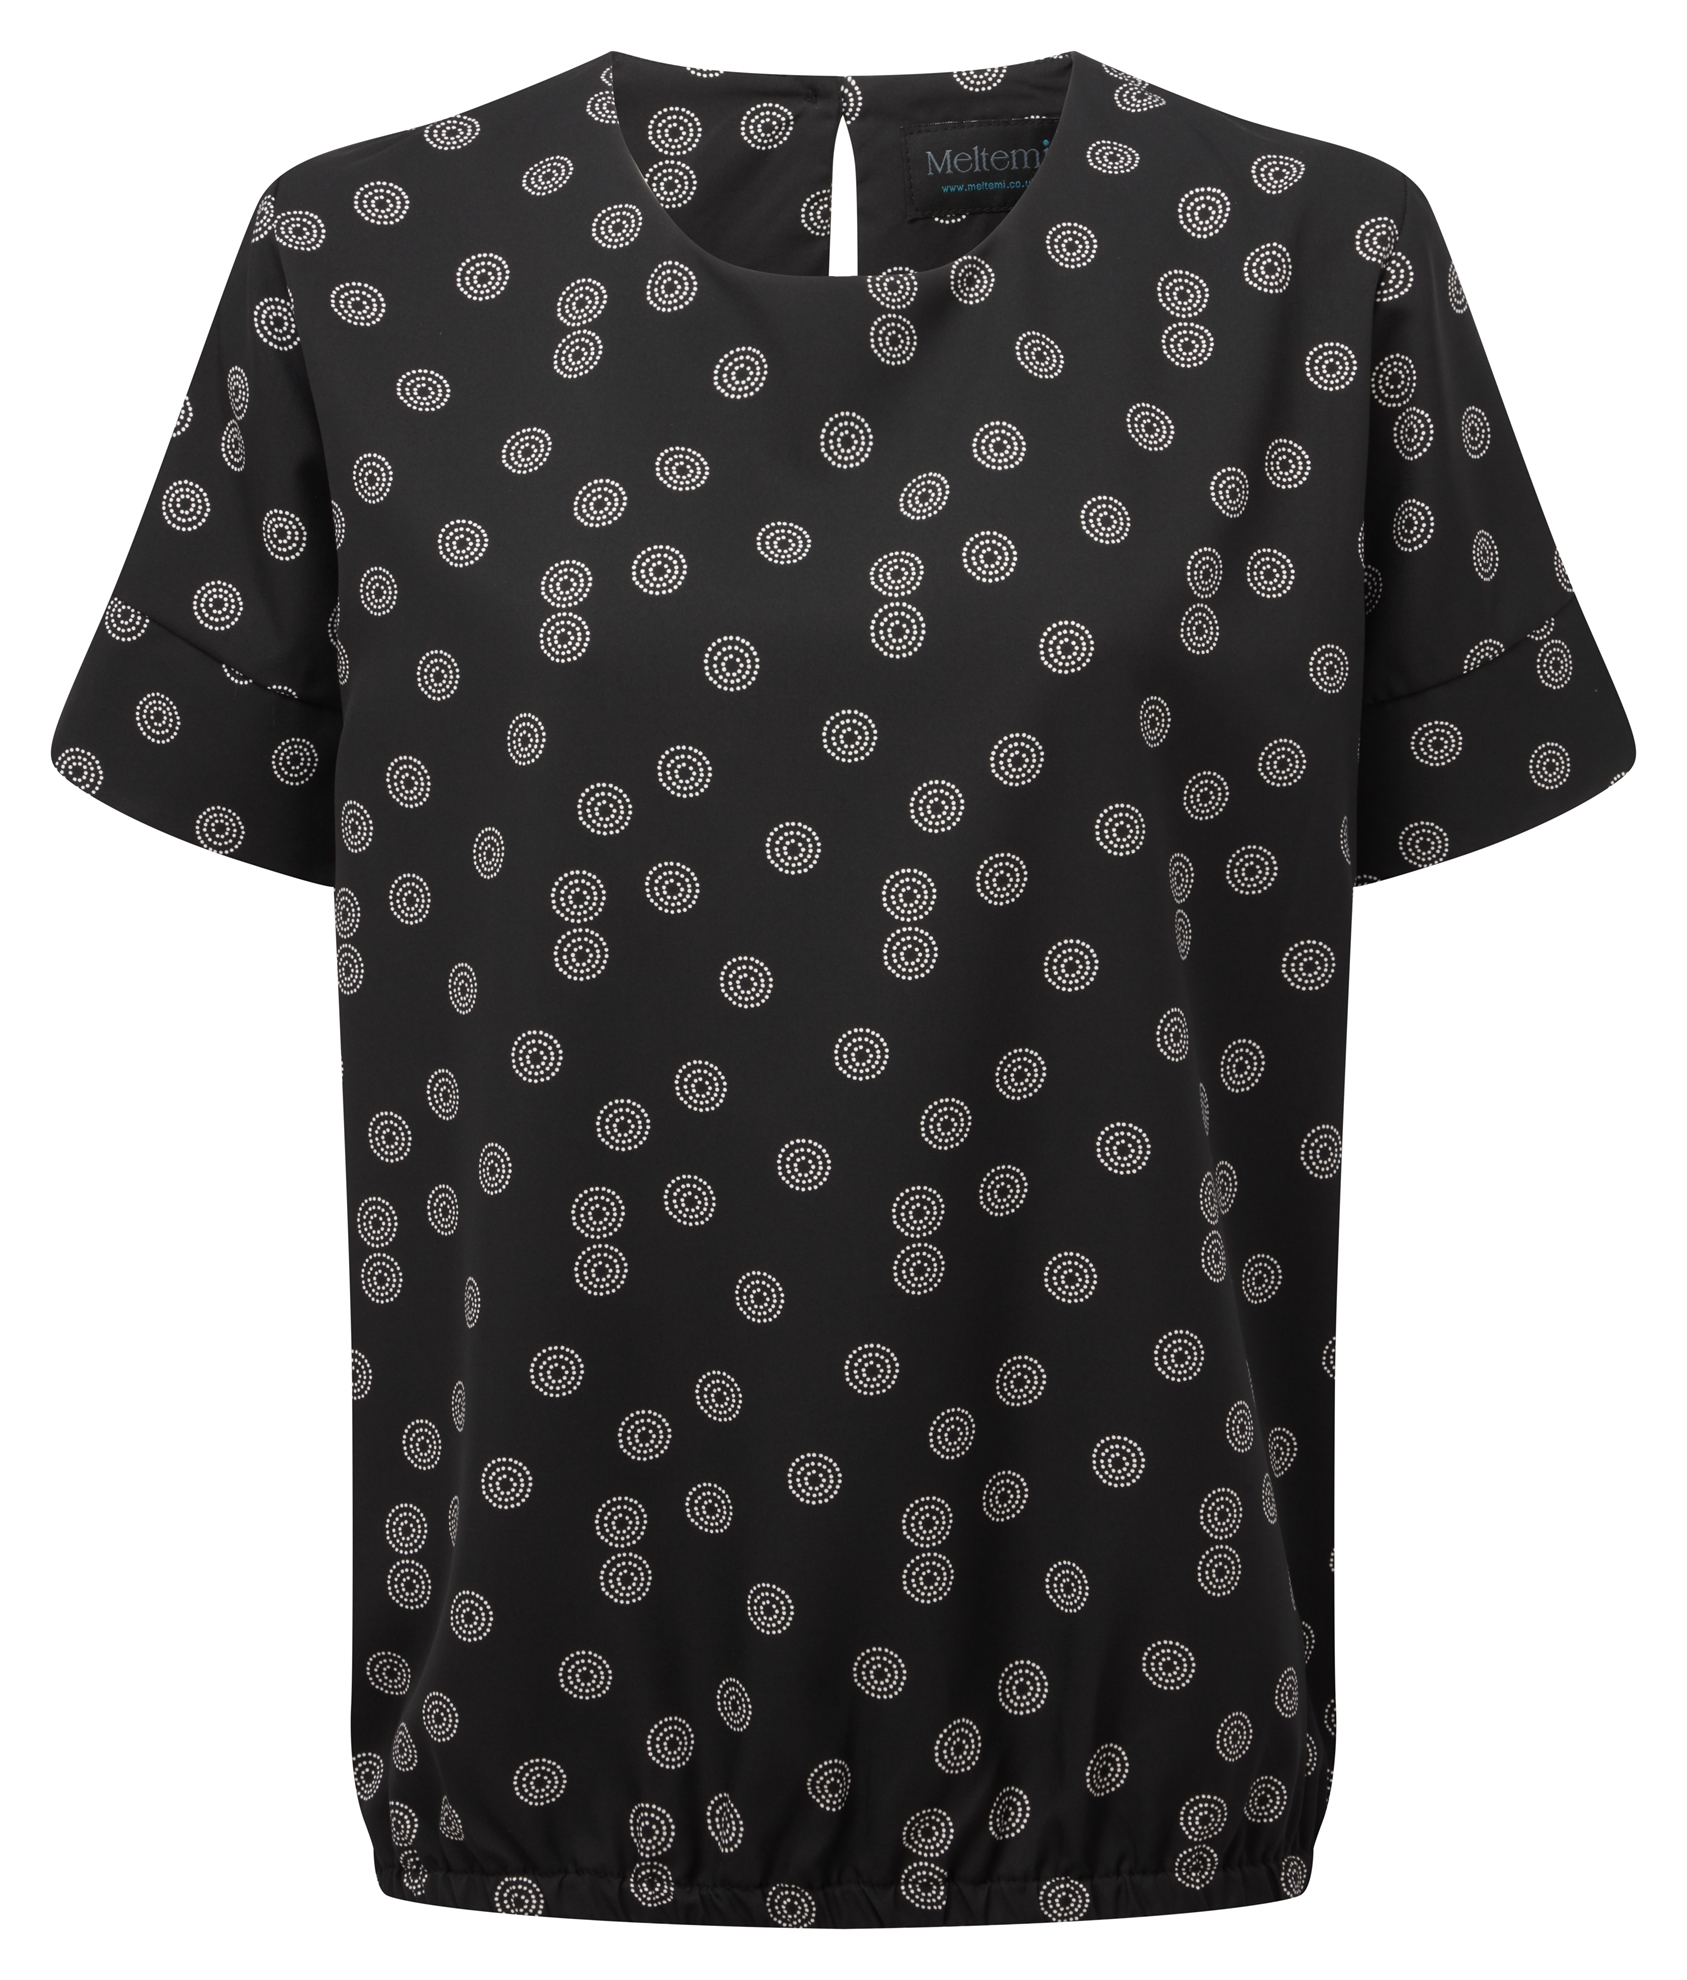 Picture of Looser Fit CoolWeave Blouson Style Blouse - Black/White Sienna Print